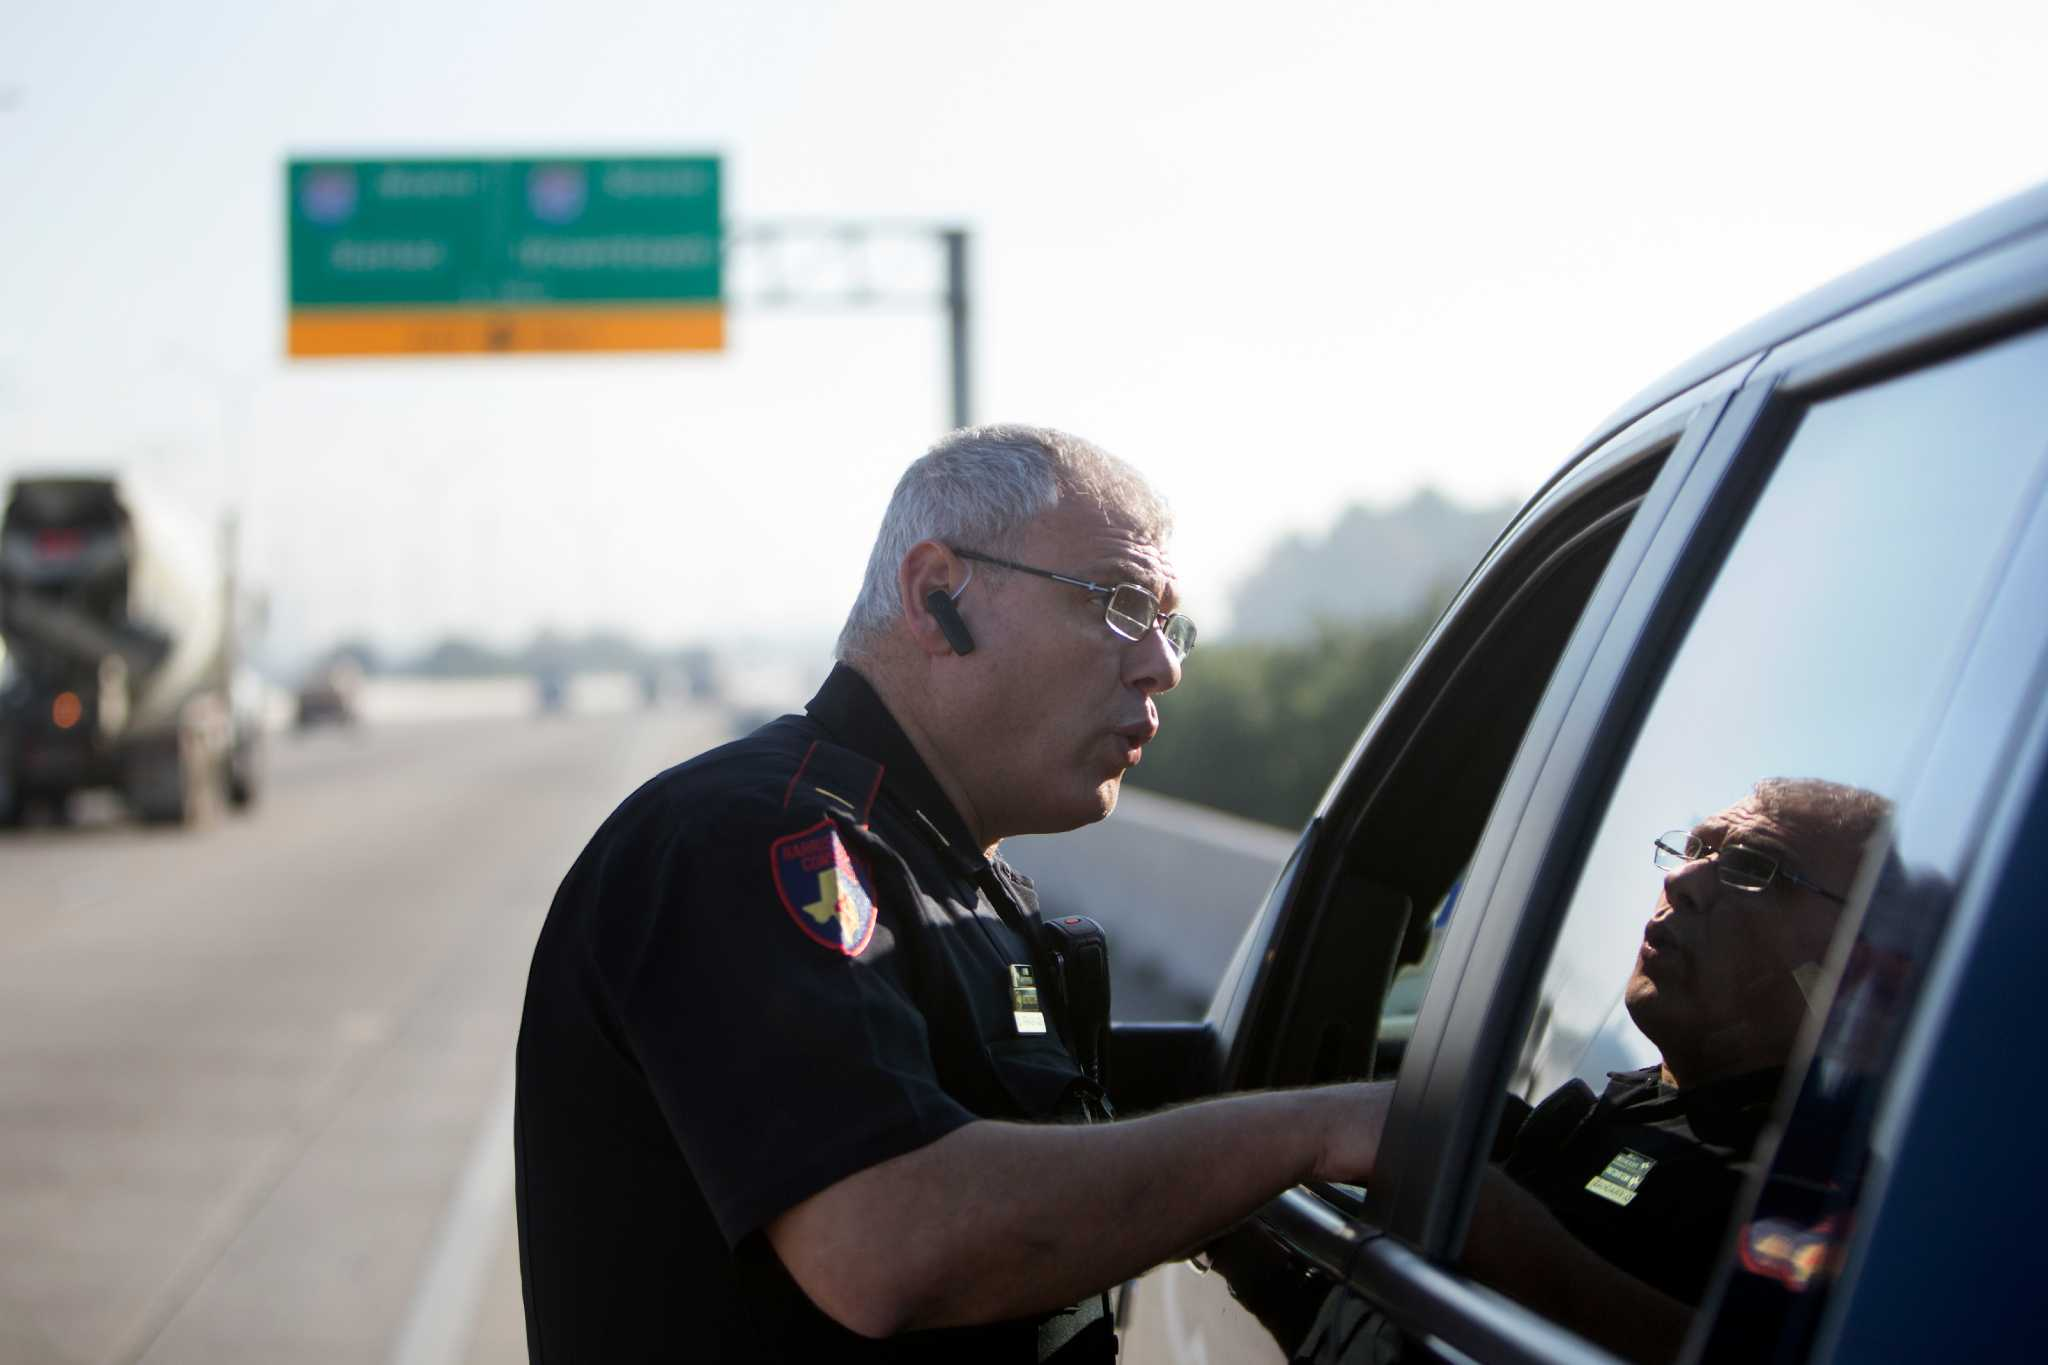 Drivers Rack Up 358m In Unpaid Tolls In Harris County